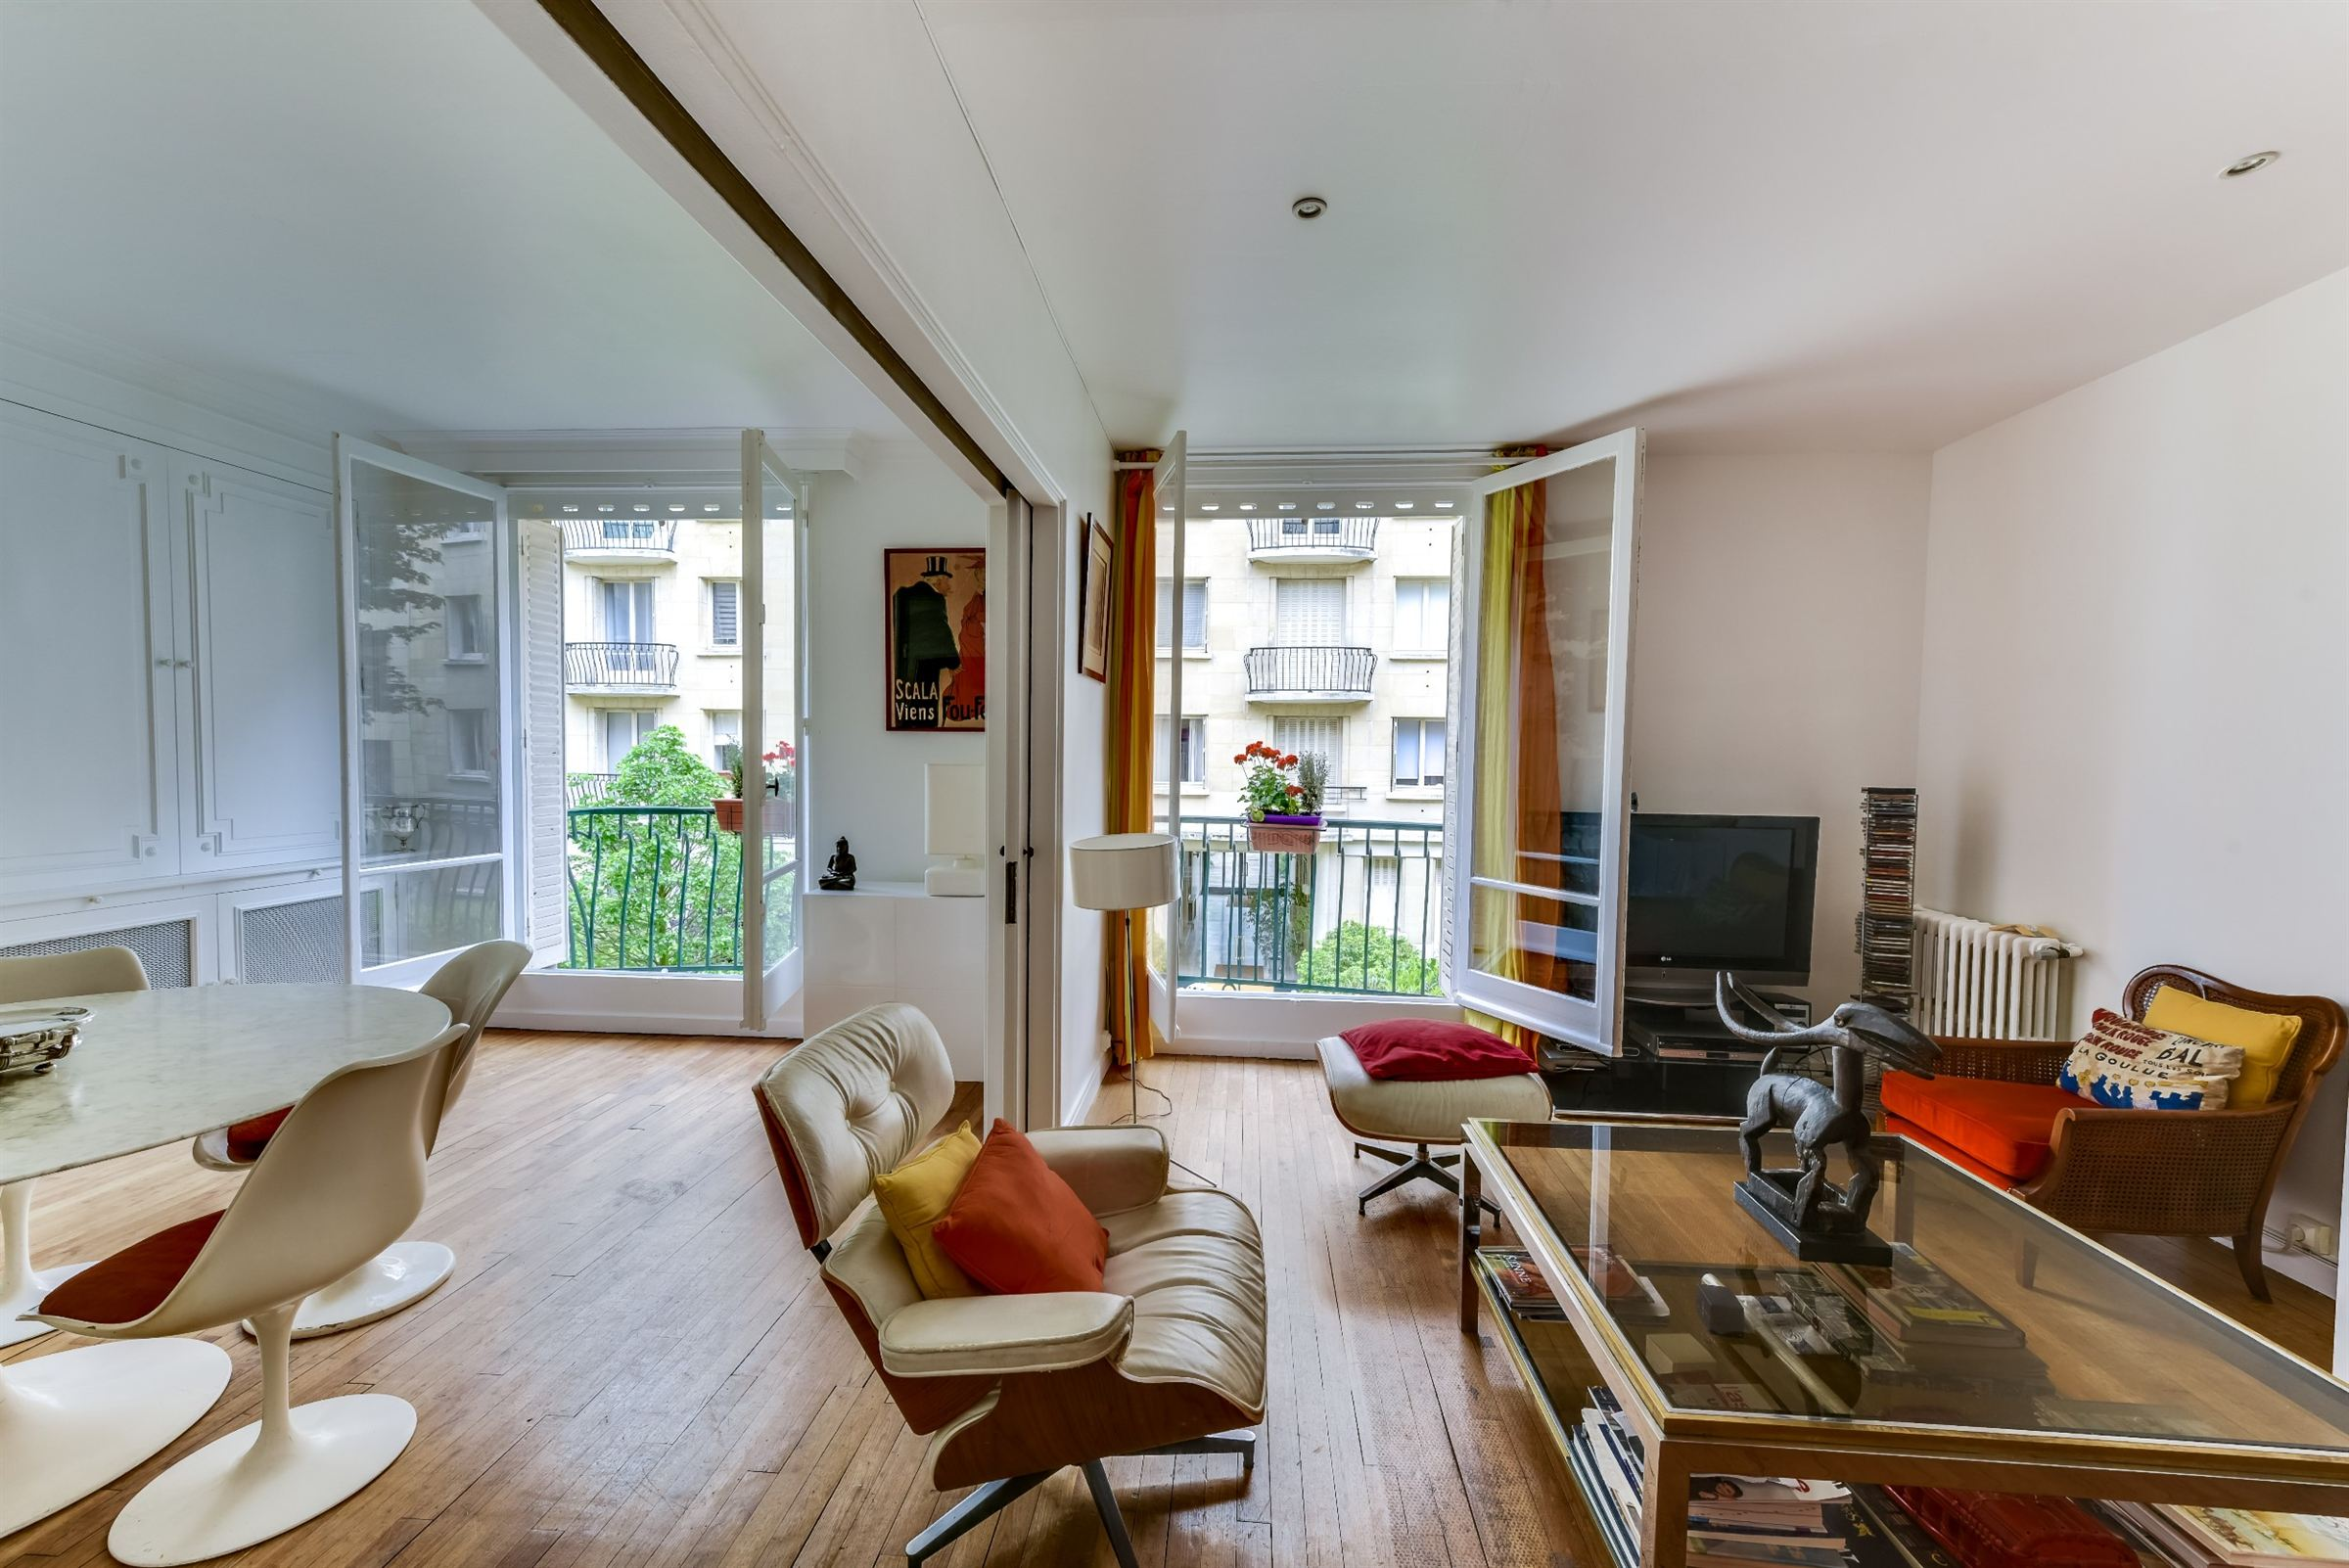 sales property at A 94 sq.m apartment for sale, sole agent, Neuilly - Jean Mermoz, 2 bedrooms